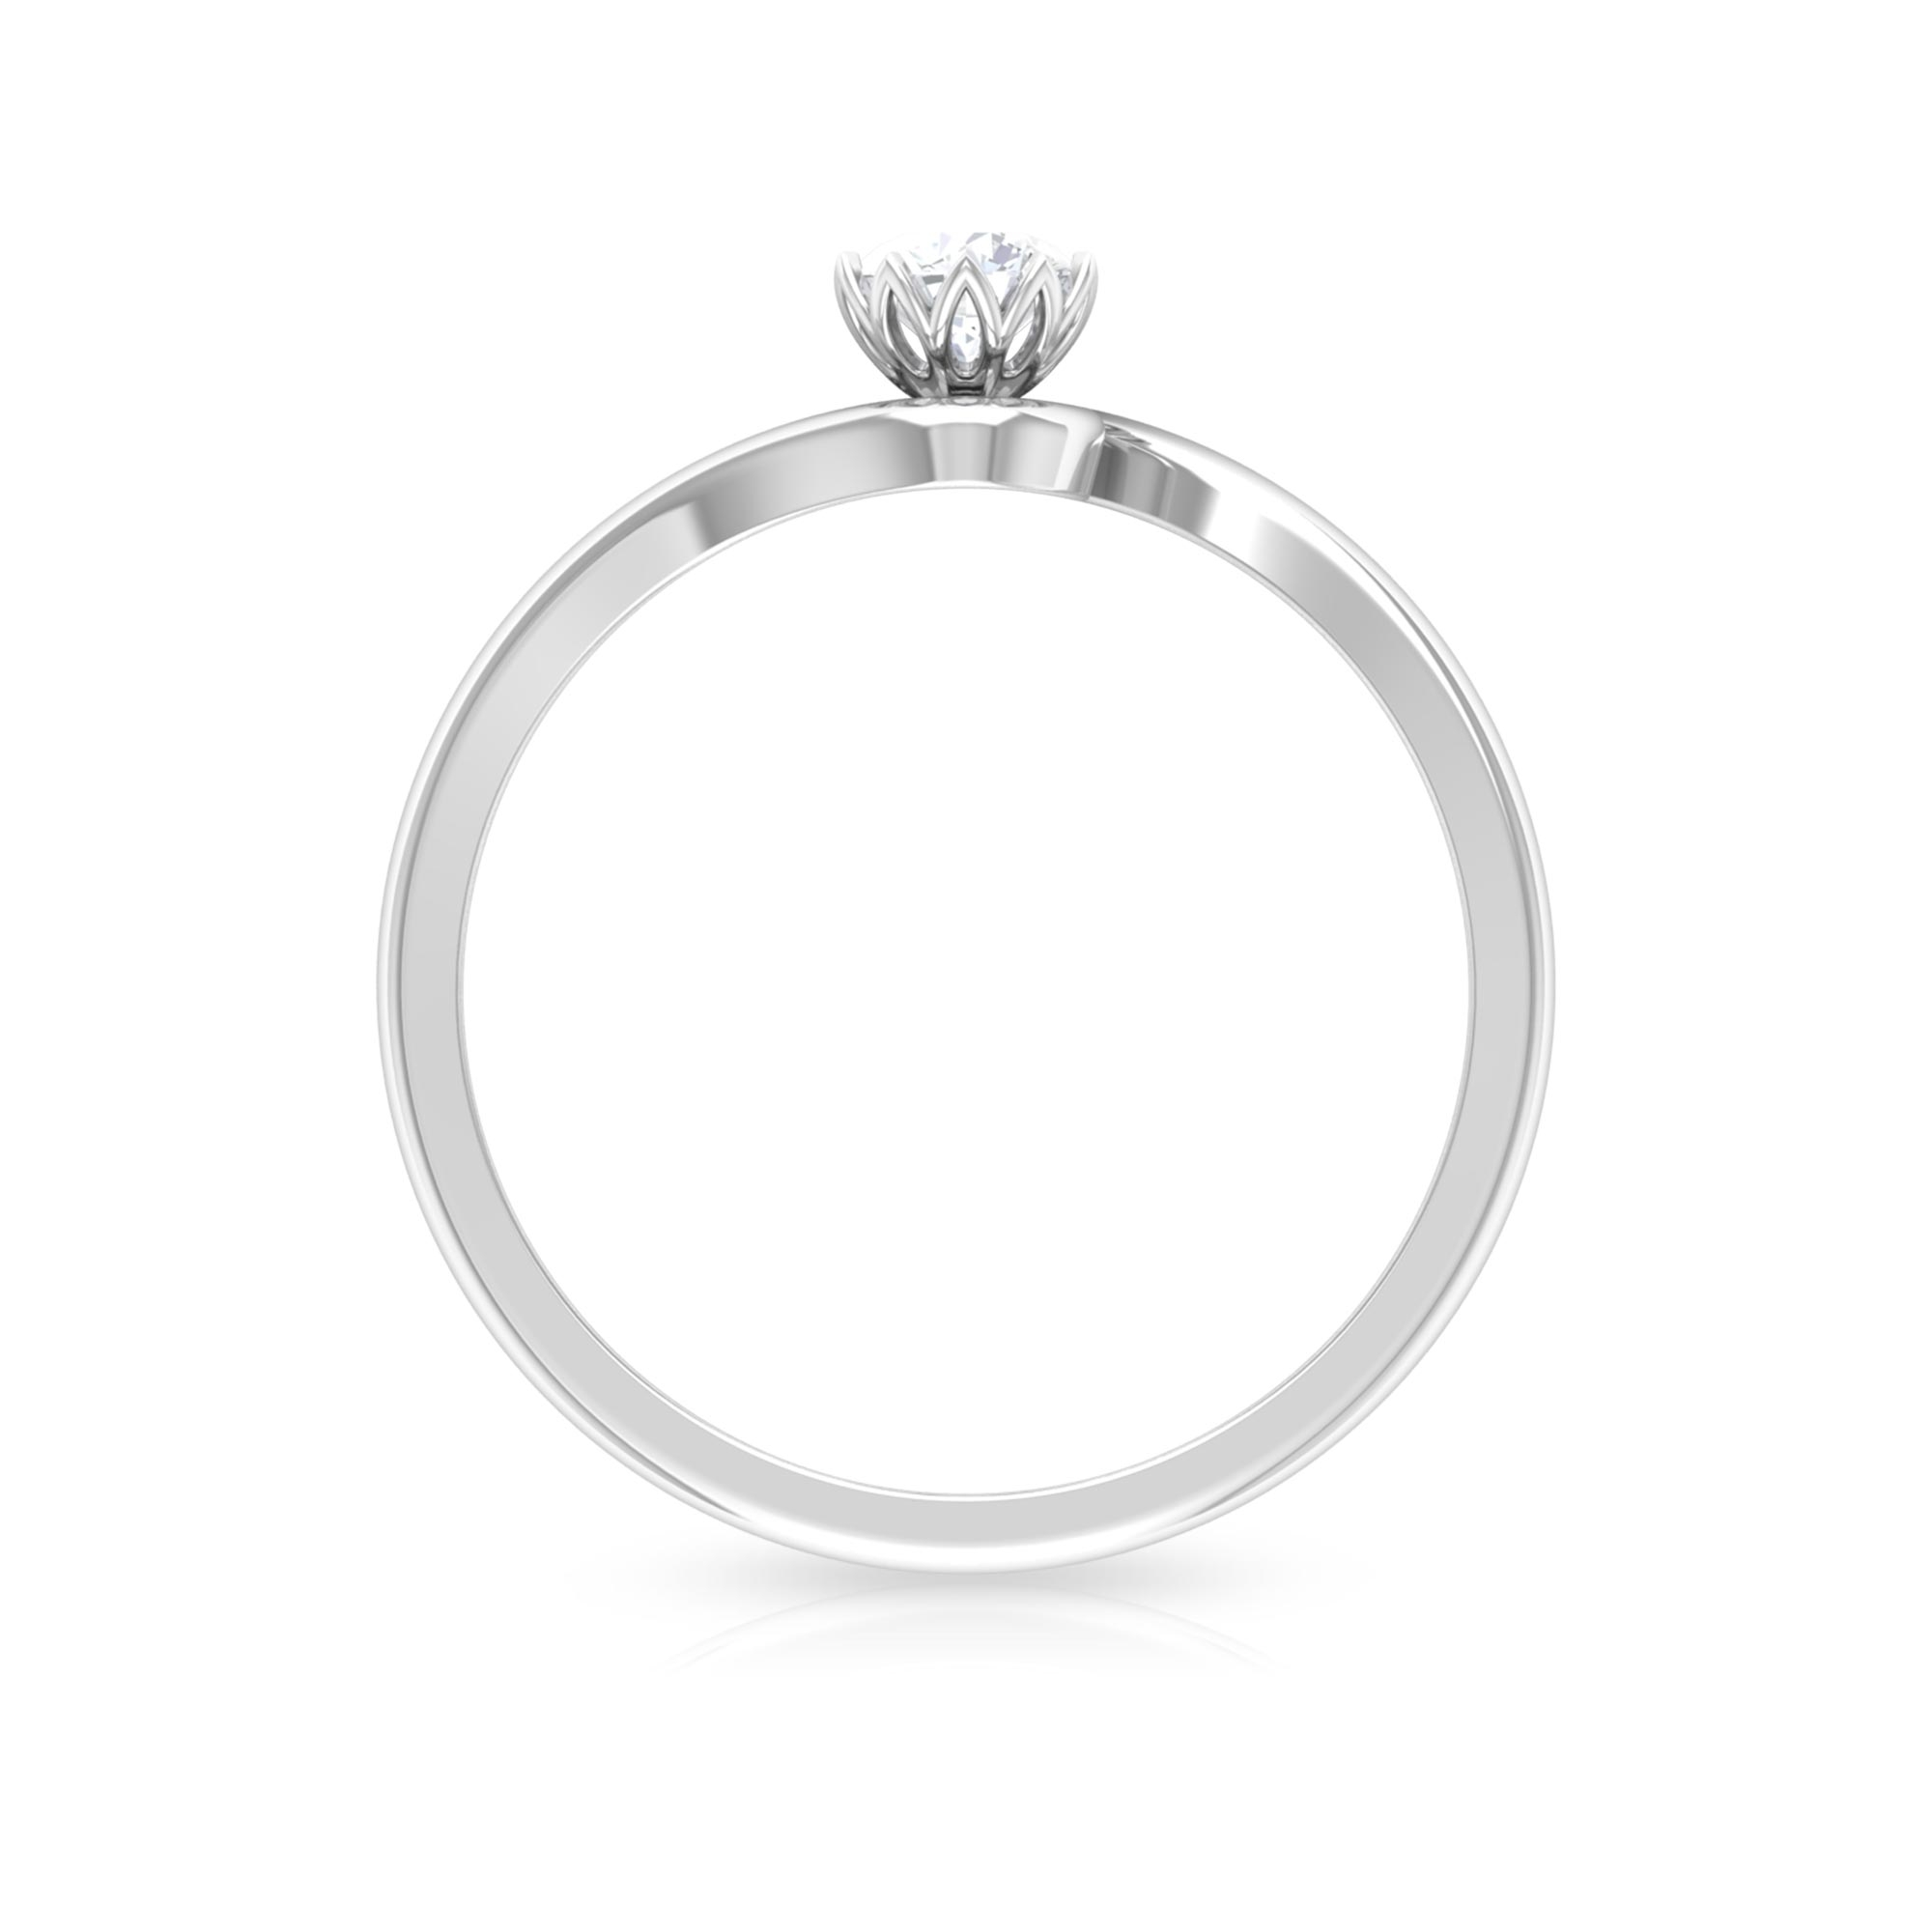 4 MM Round Cut Diamond Solitaire Ring in Lotus Basket Setting with Bypass Shank